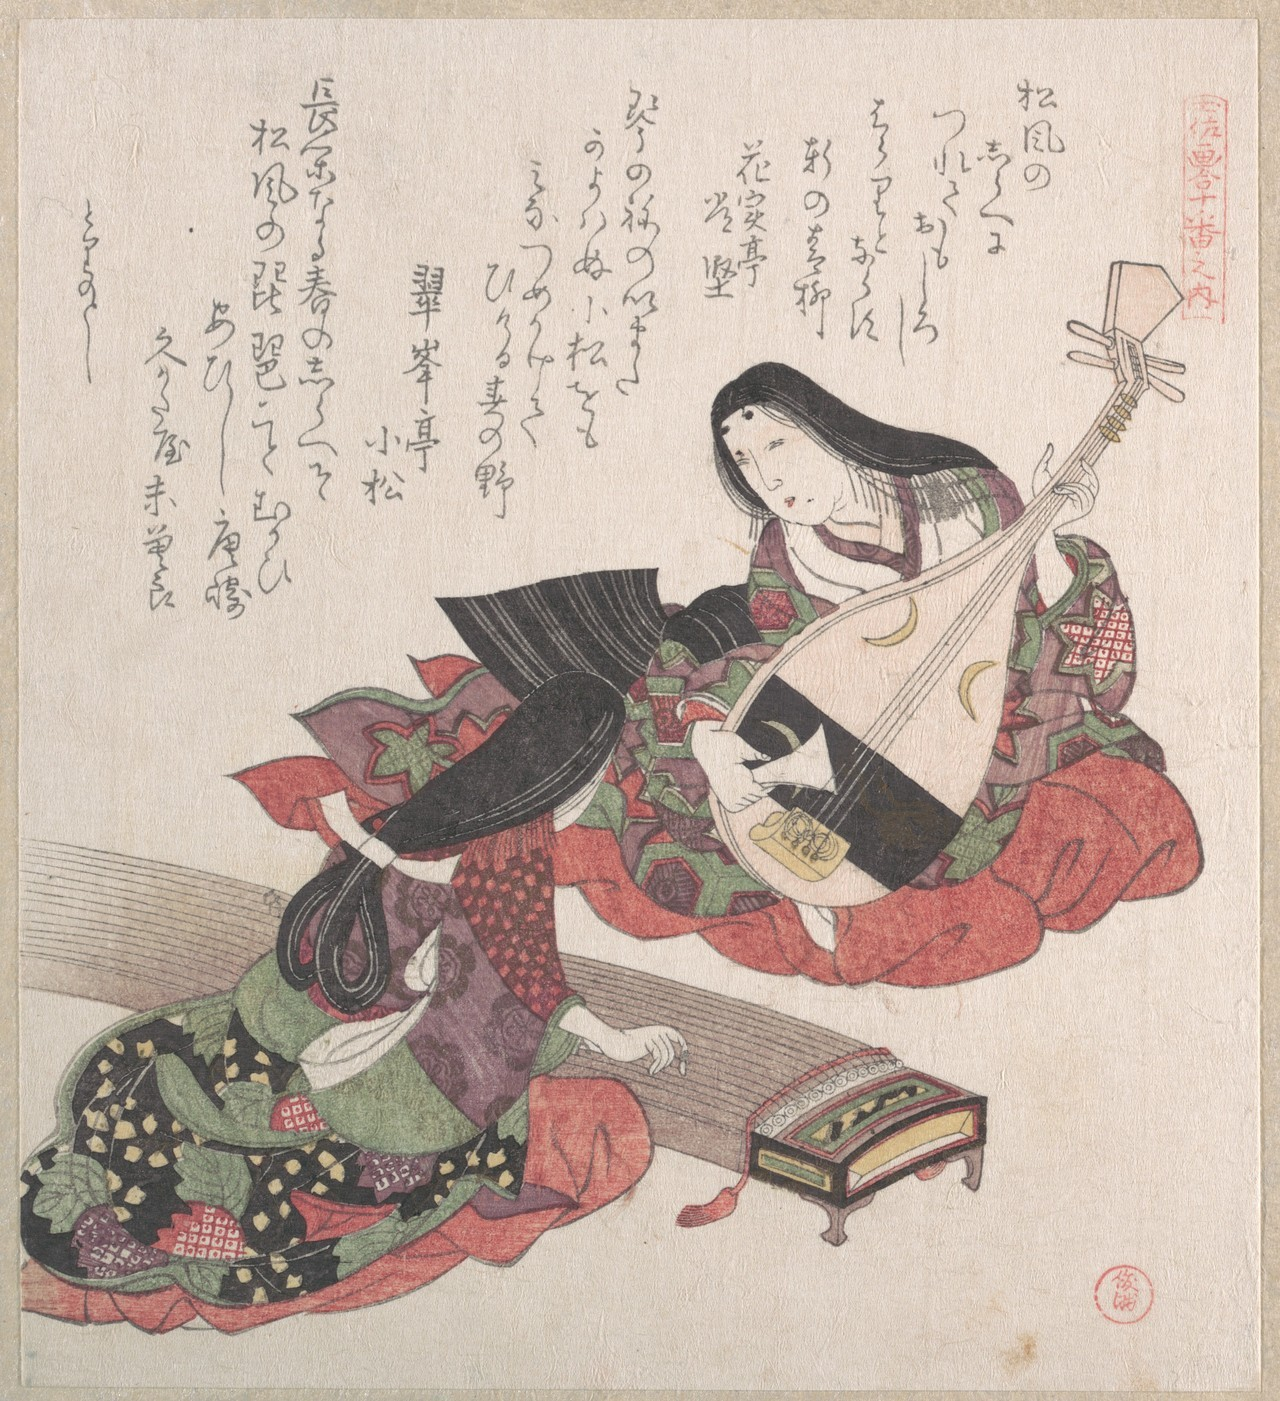 Kubo Shunman - Two Ladies; One is Playing the Biwa (Japanese Lute) and the Other, the Koto (Japanese Harp), 1815. Part of an album of woodblock prints (surimono); ink and color on paper